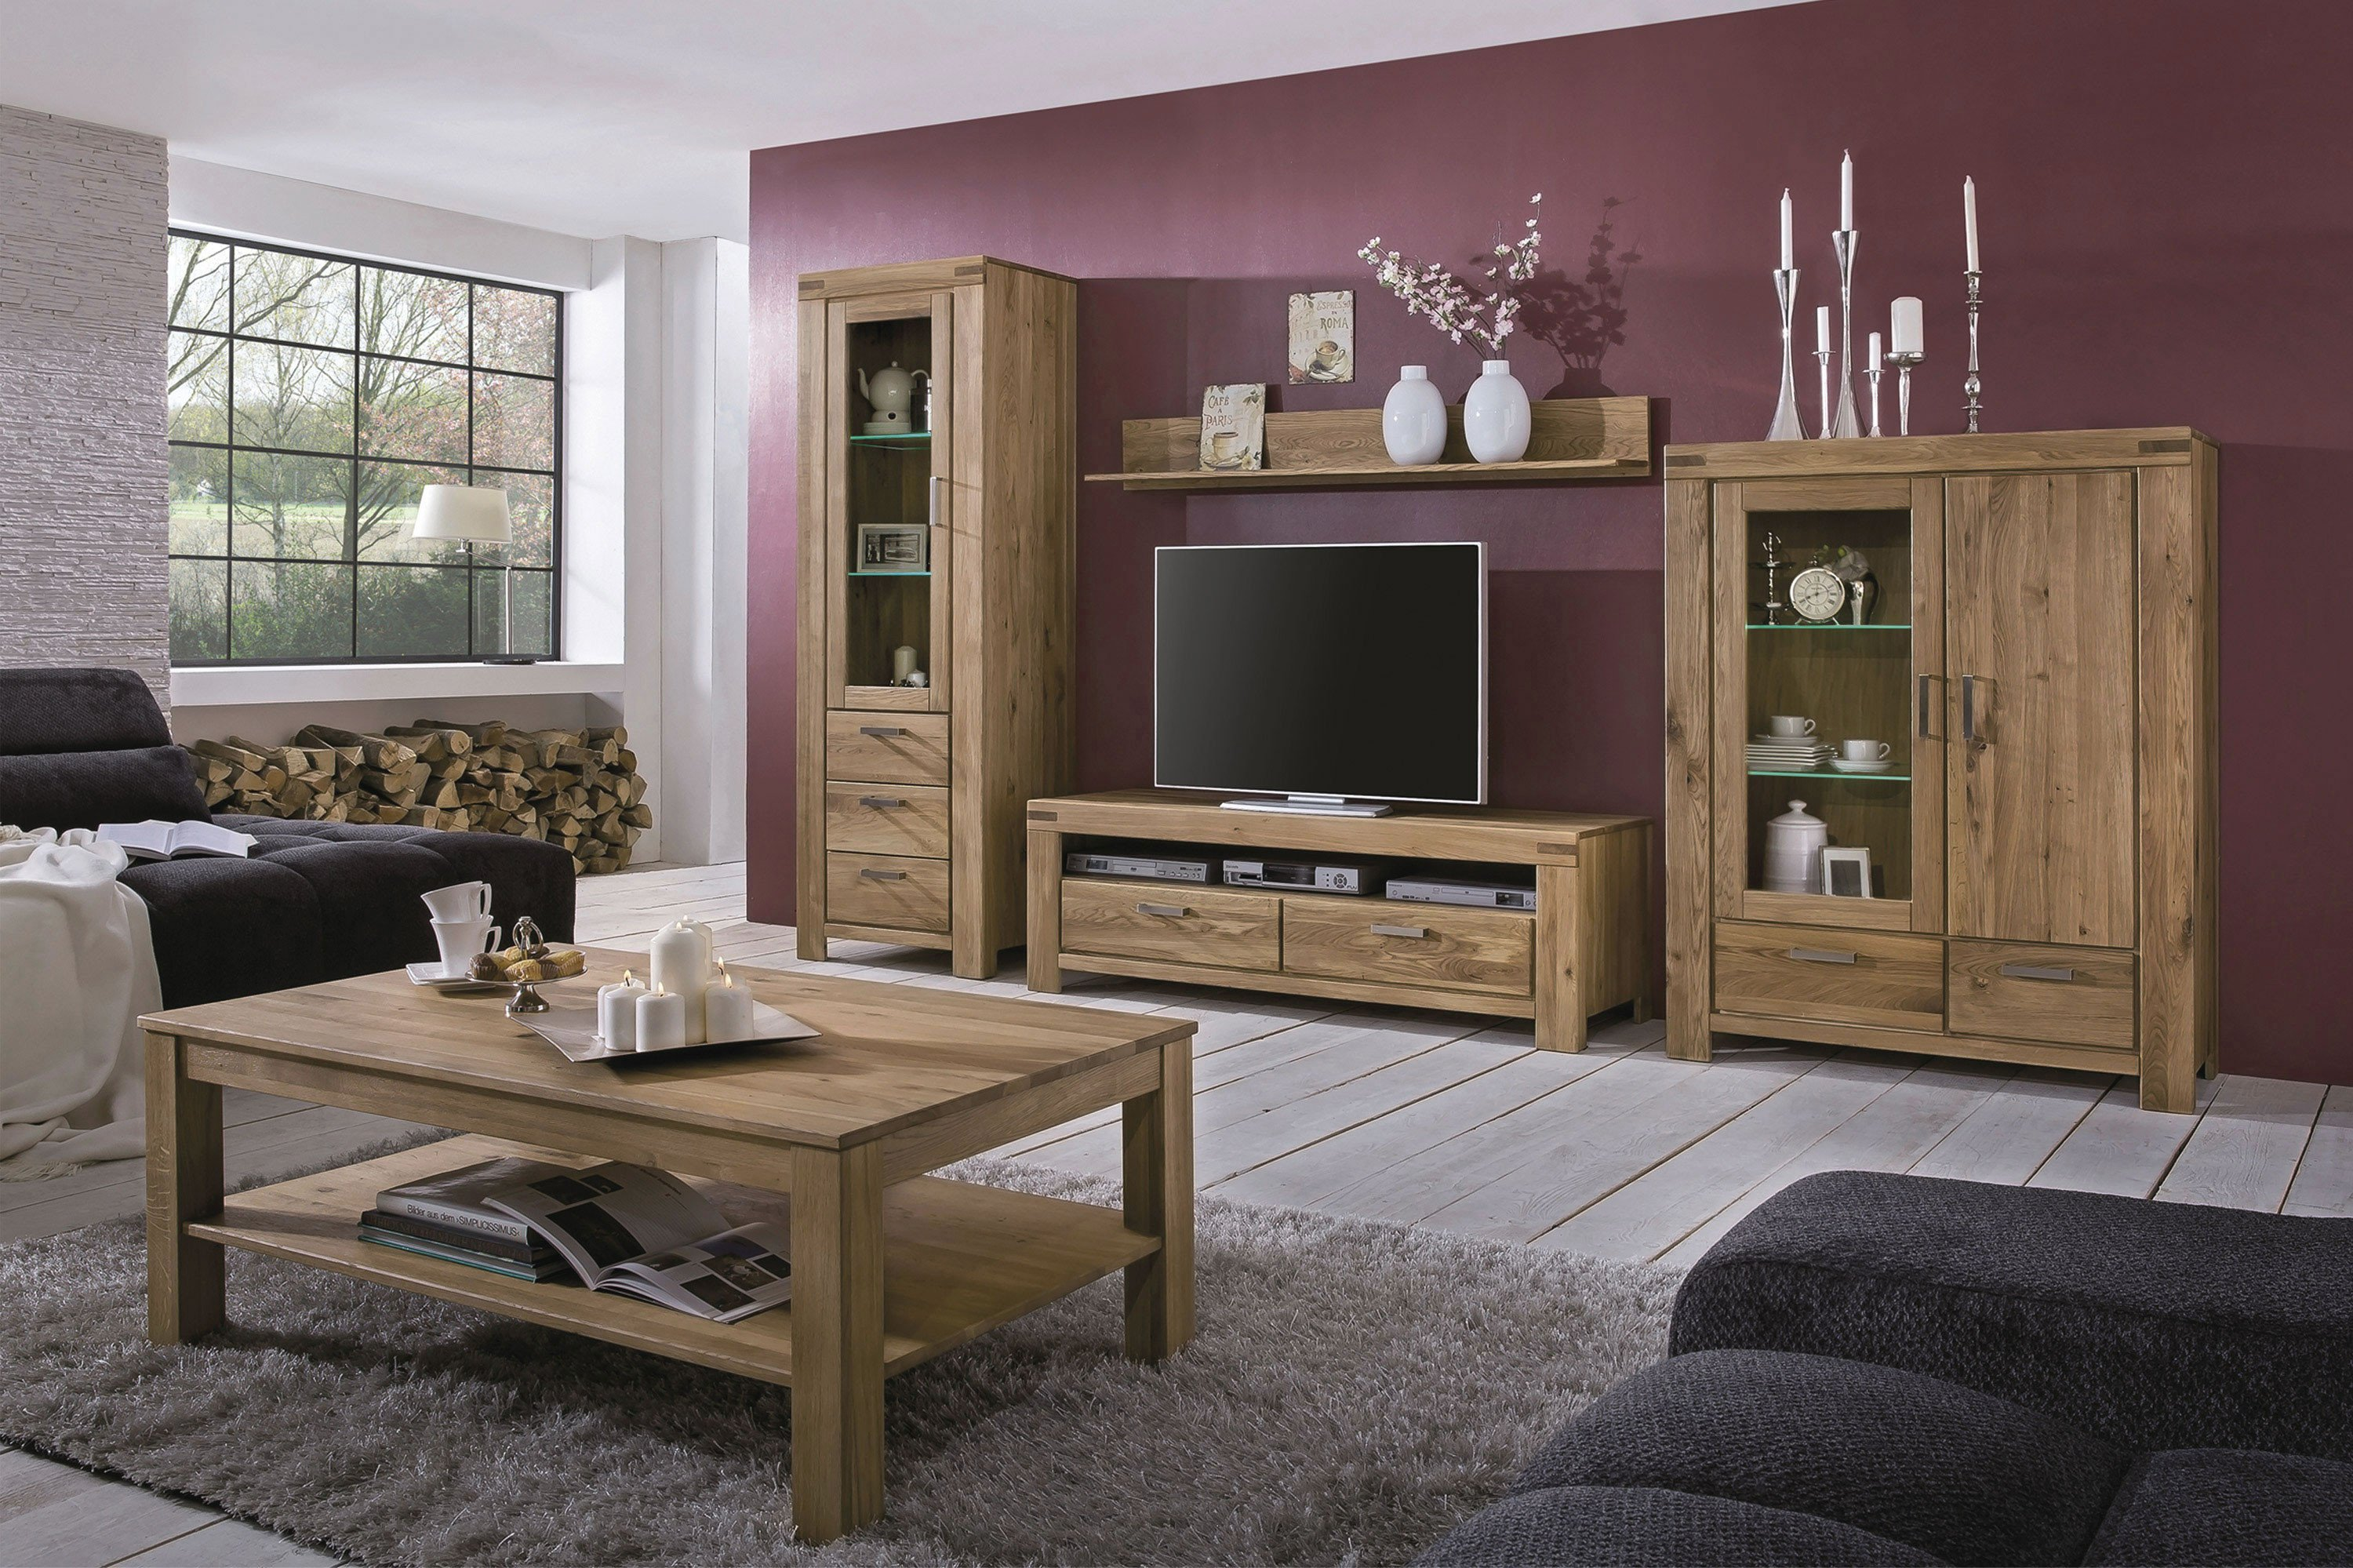 elfo m bel wohnwand kira ge lte wildeiche m bel letz ihr online shop. Black Bedroom Furniture Sets. Home Design Ideas